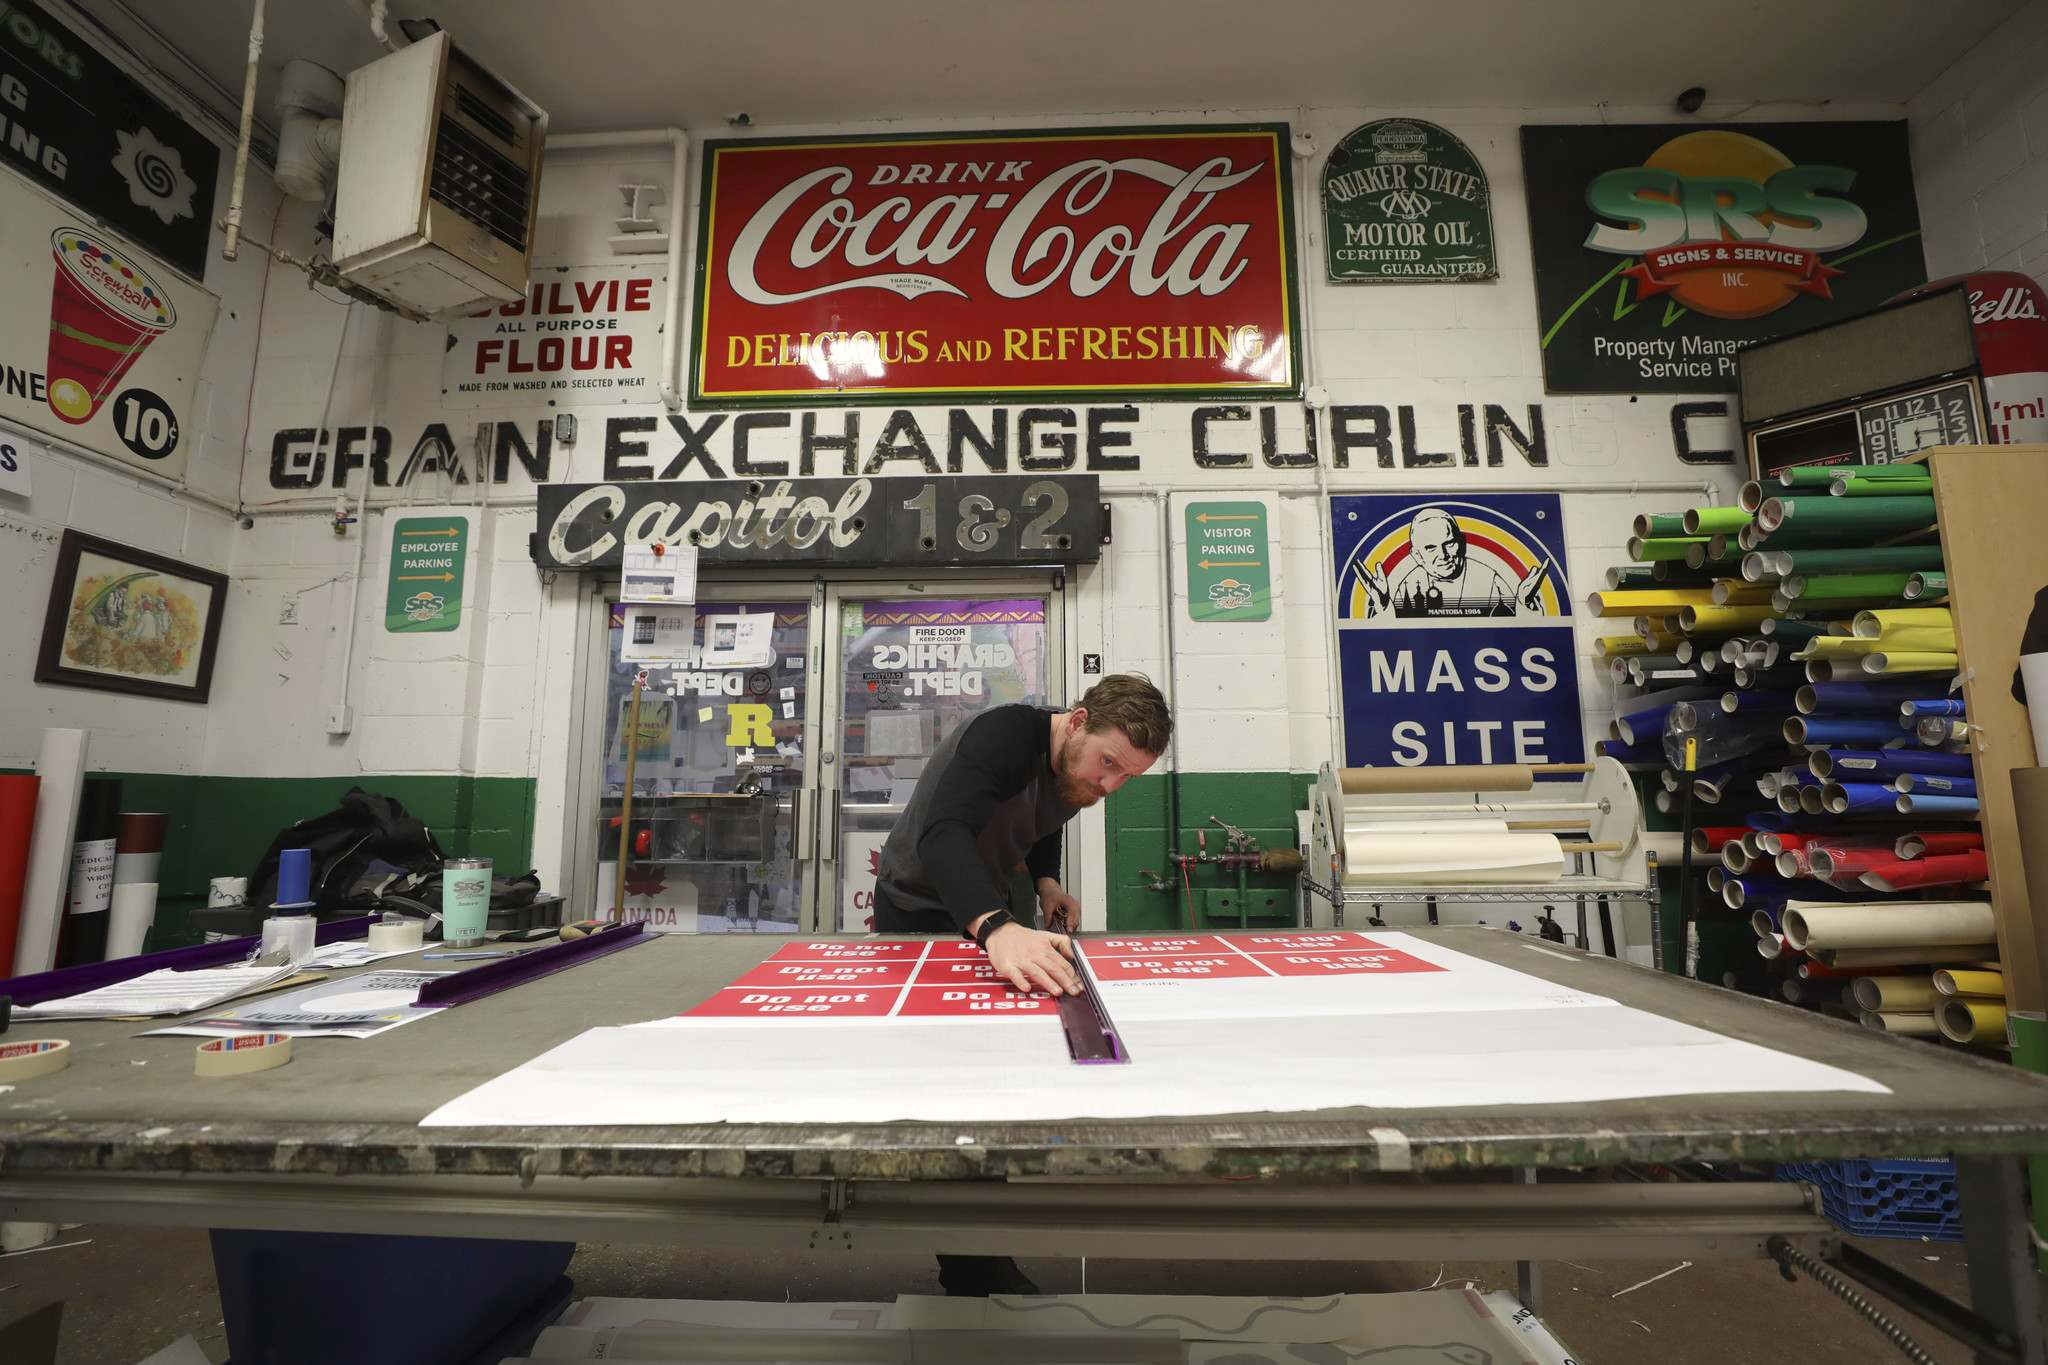 Storie says his employees, while making a new sign for a business take inspiration from the artifacts around them.